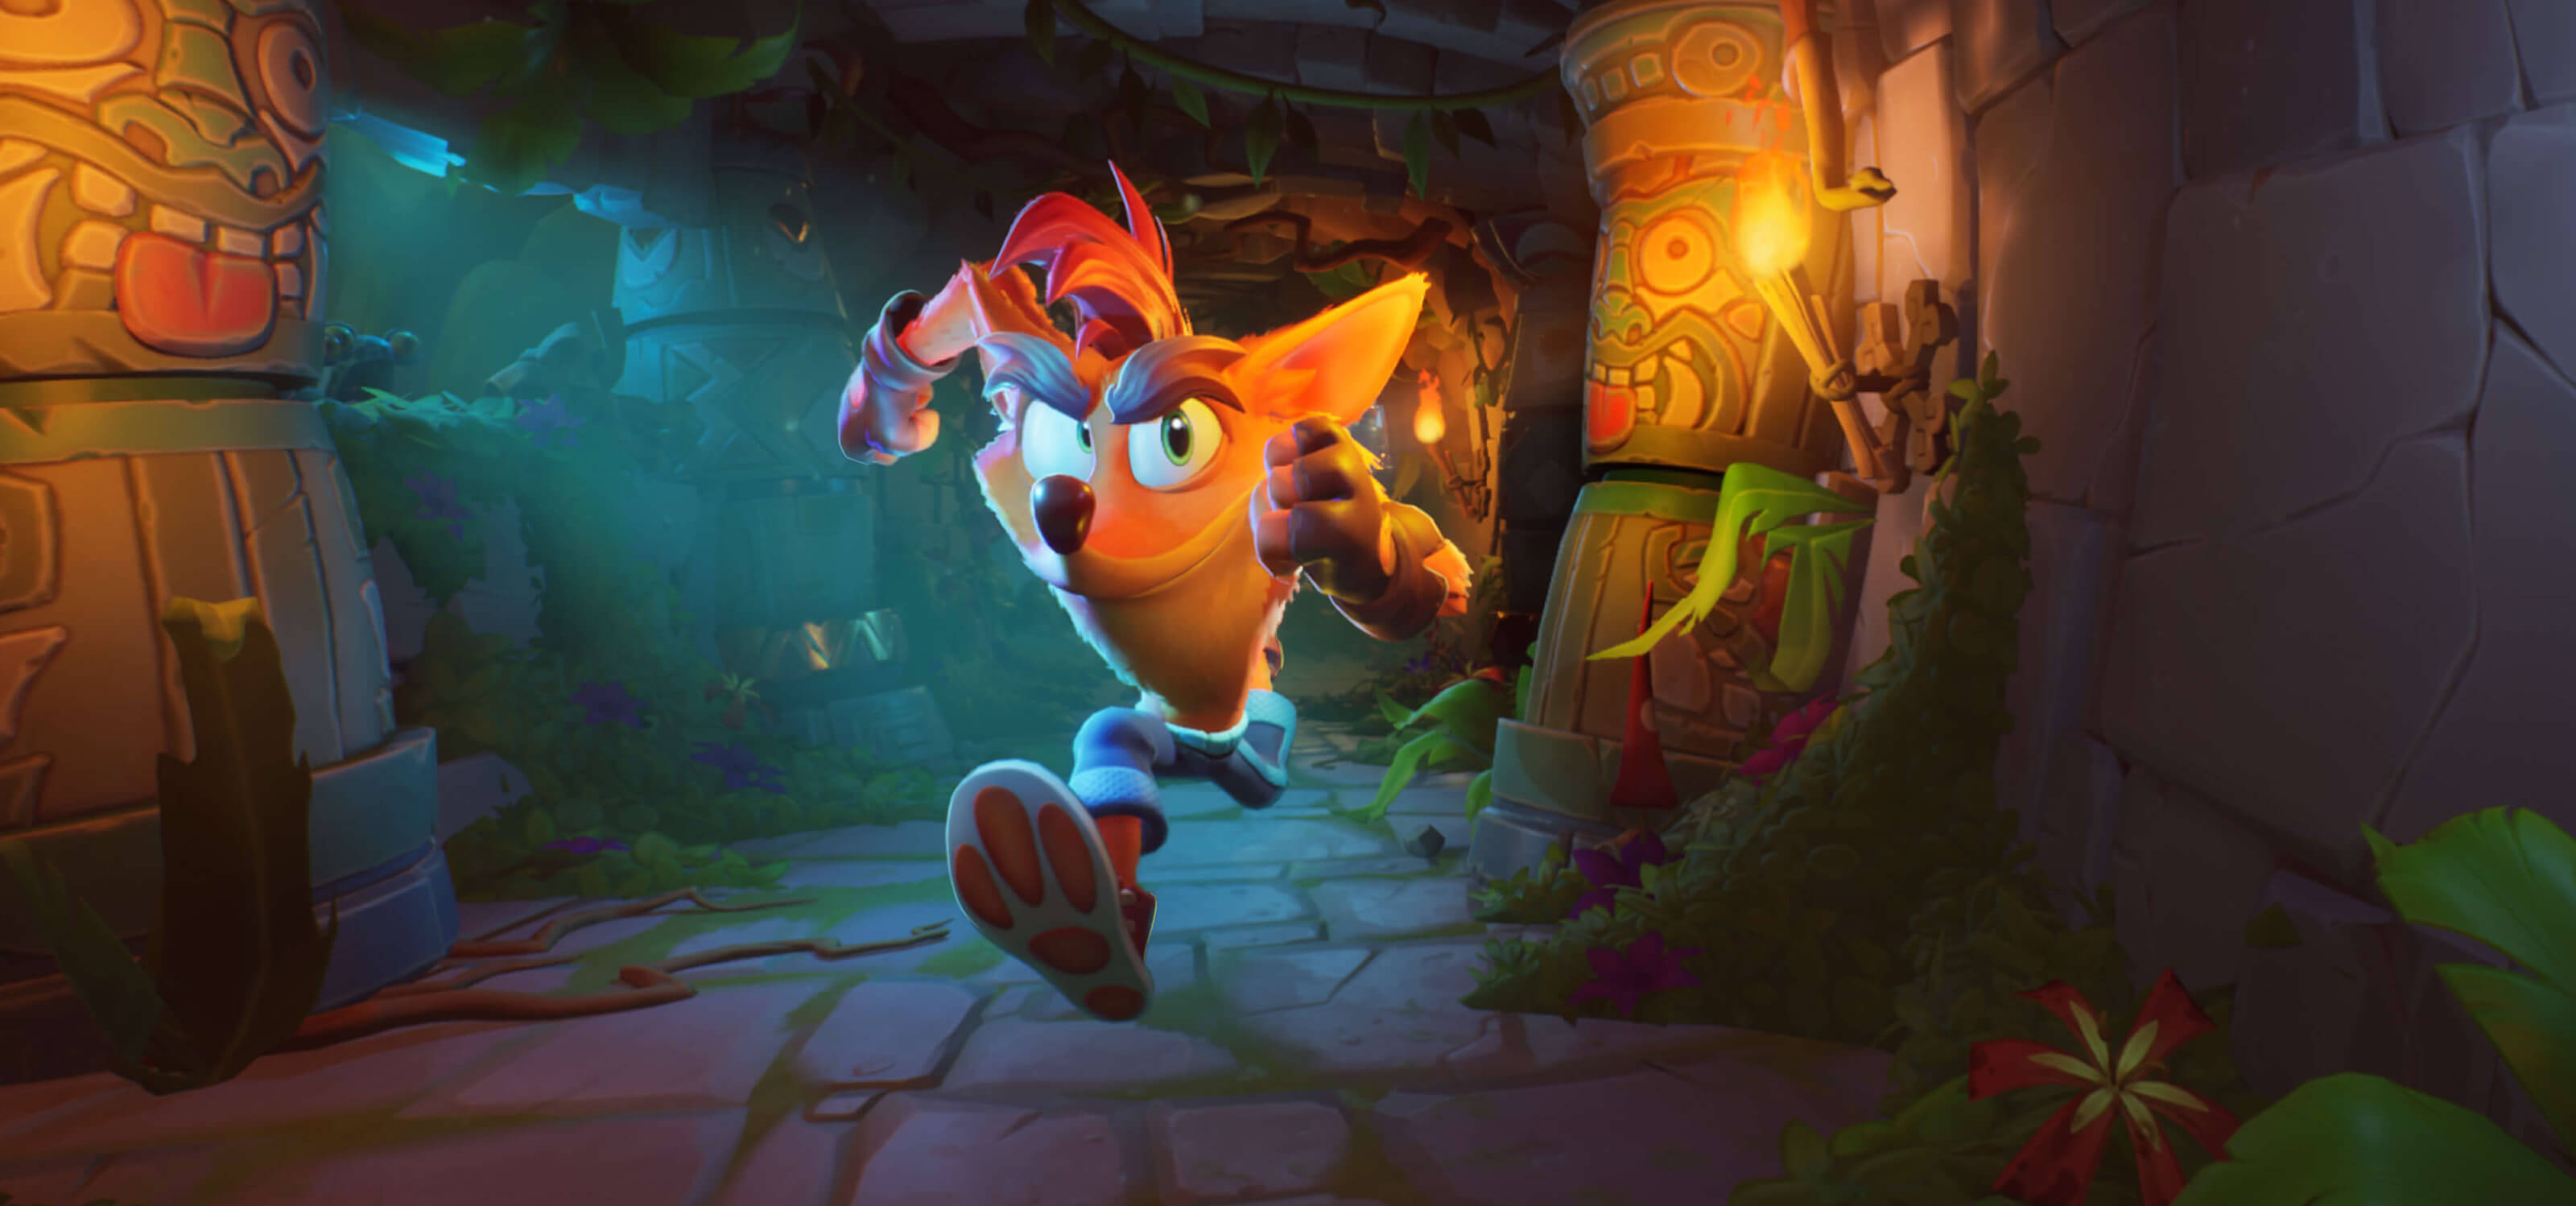 A screenshot from Crash Bandicoot 4: It's About Time depicting Crash running down a temple hallway.